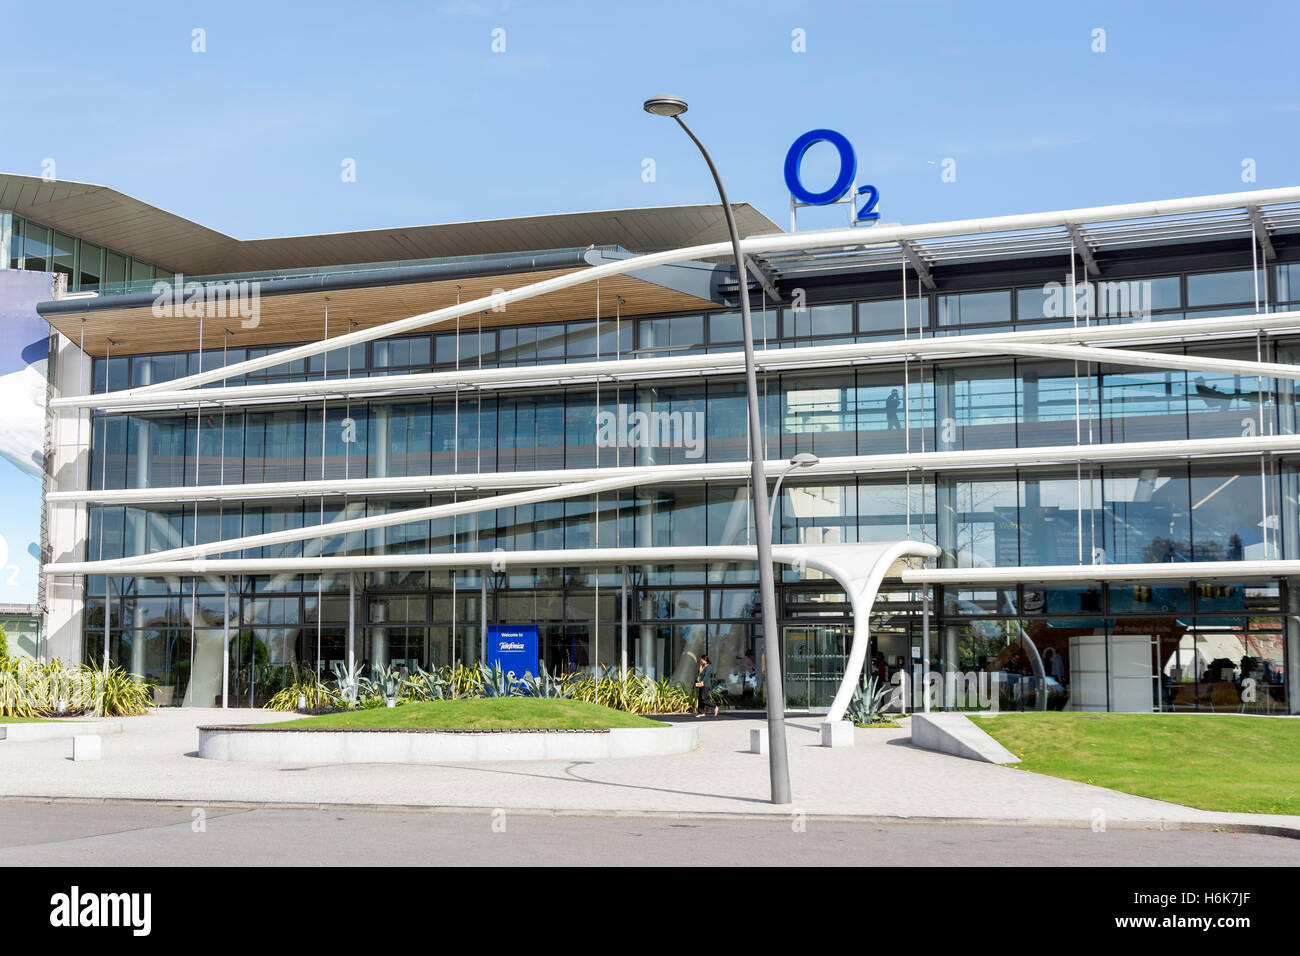 Telefónica UK Limited (O2), Slough Trading Estate, Bath Road, Slough, Berkshire, England, United Kingdom - Stock Image